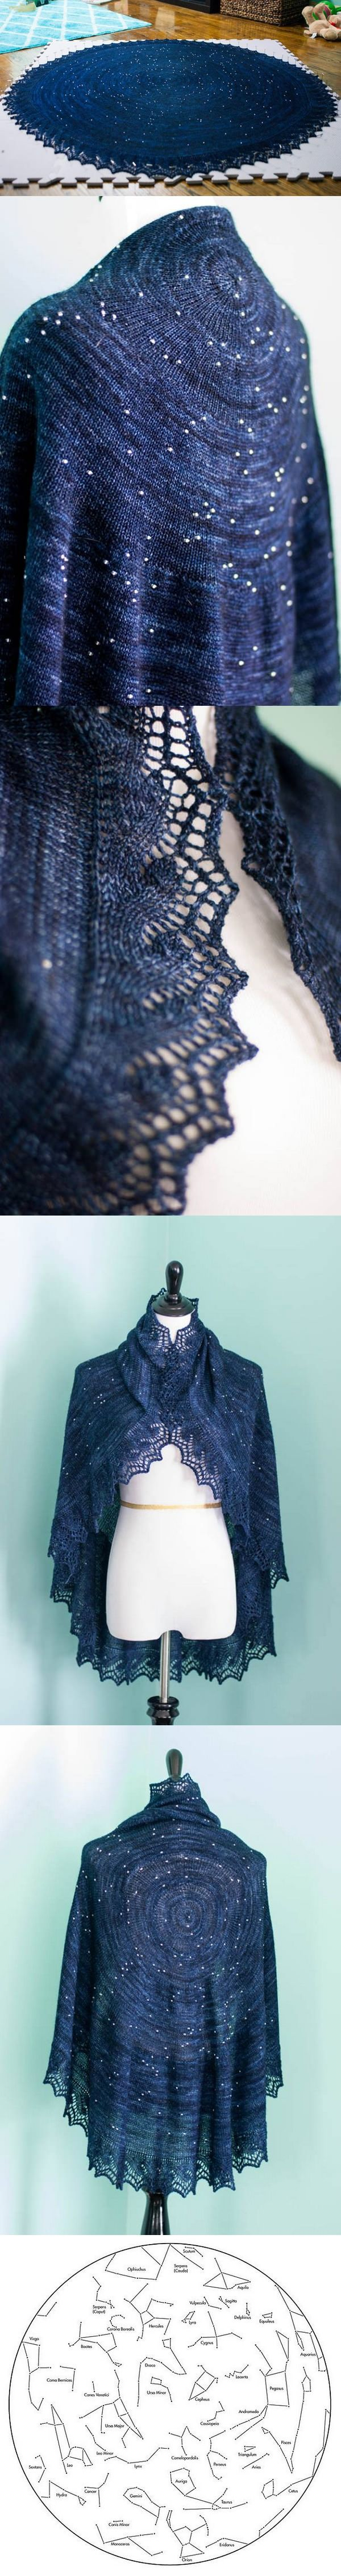 """""""Celestarium"""" by The Twist Collective 